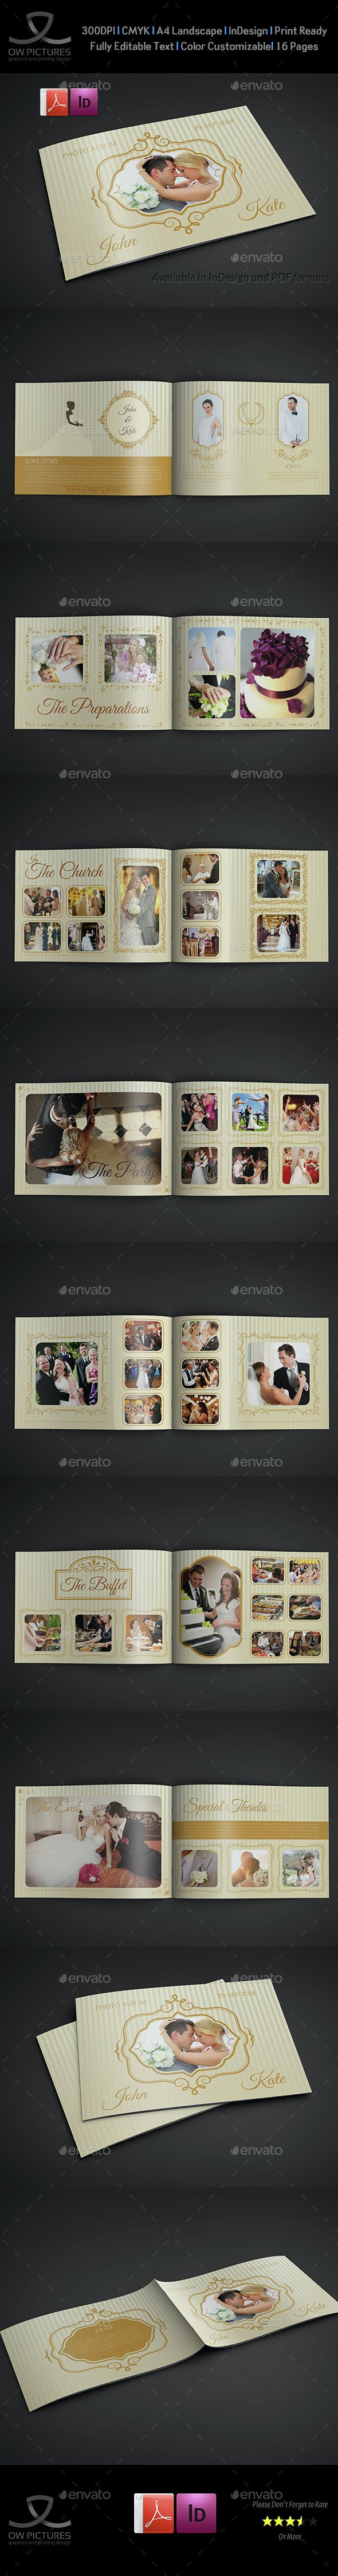 Wedding Al Template 16 Pages Photo Als Print Templates